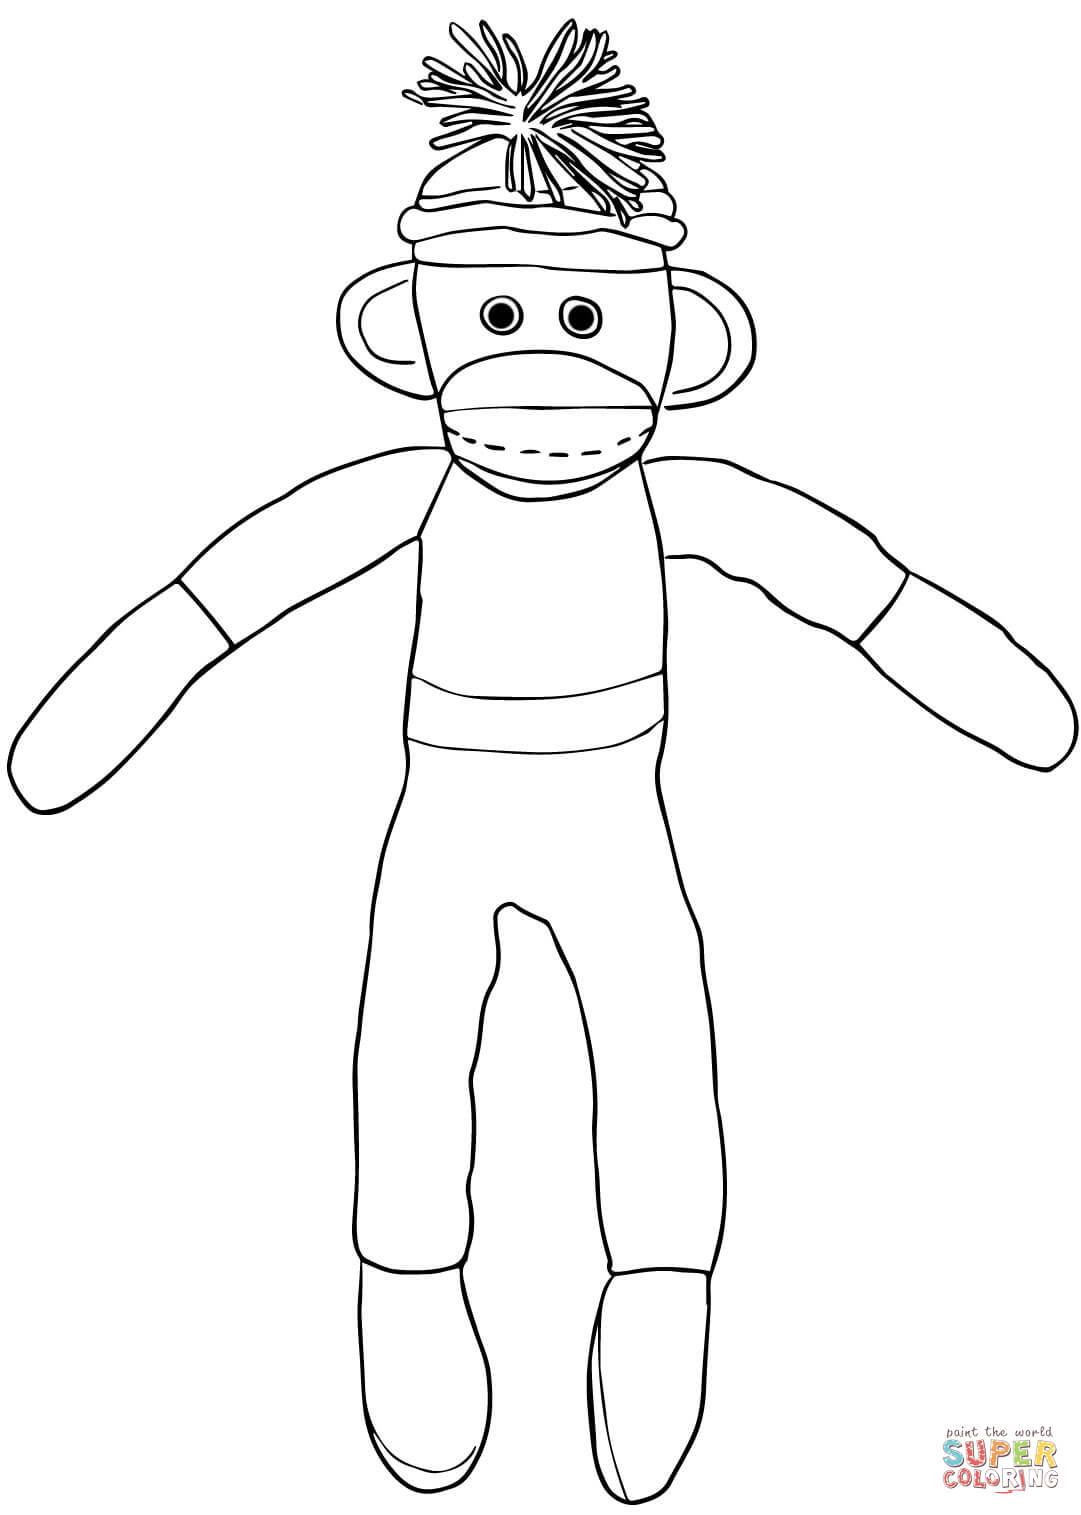 1081x1515 Christmas Sock Monkey Coloring Page For Pages